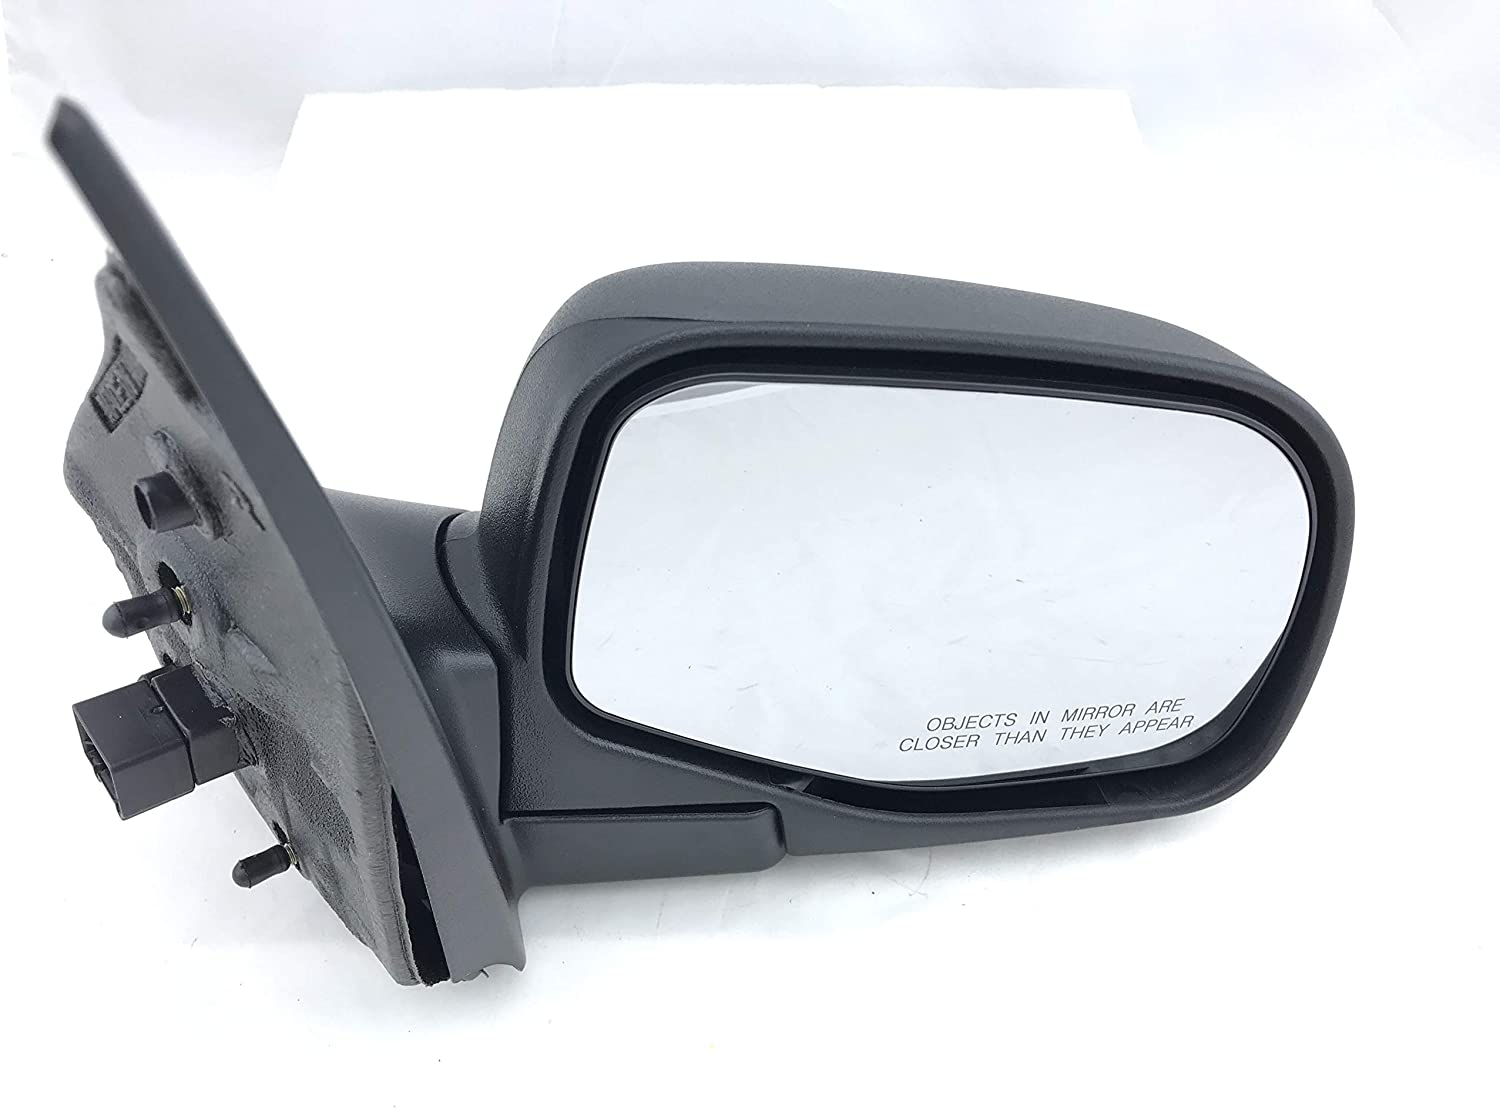 Passenger Side Mirror for FORD//MC EXPLORER//MOUNTAINEER 02-05 W//PDL PWR N-HT MIR RH | Right Outside Rear View Mirror TEXTURED Parts Link #: 1L2Z17682BAACP OE: FO1321211